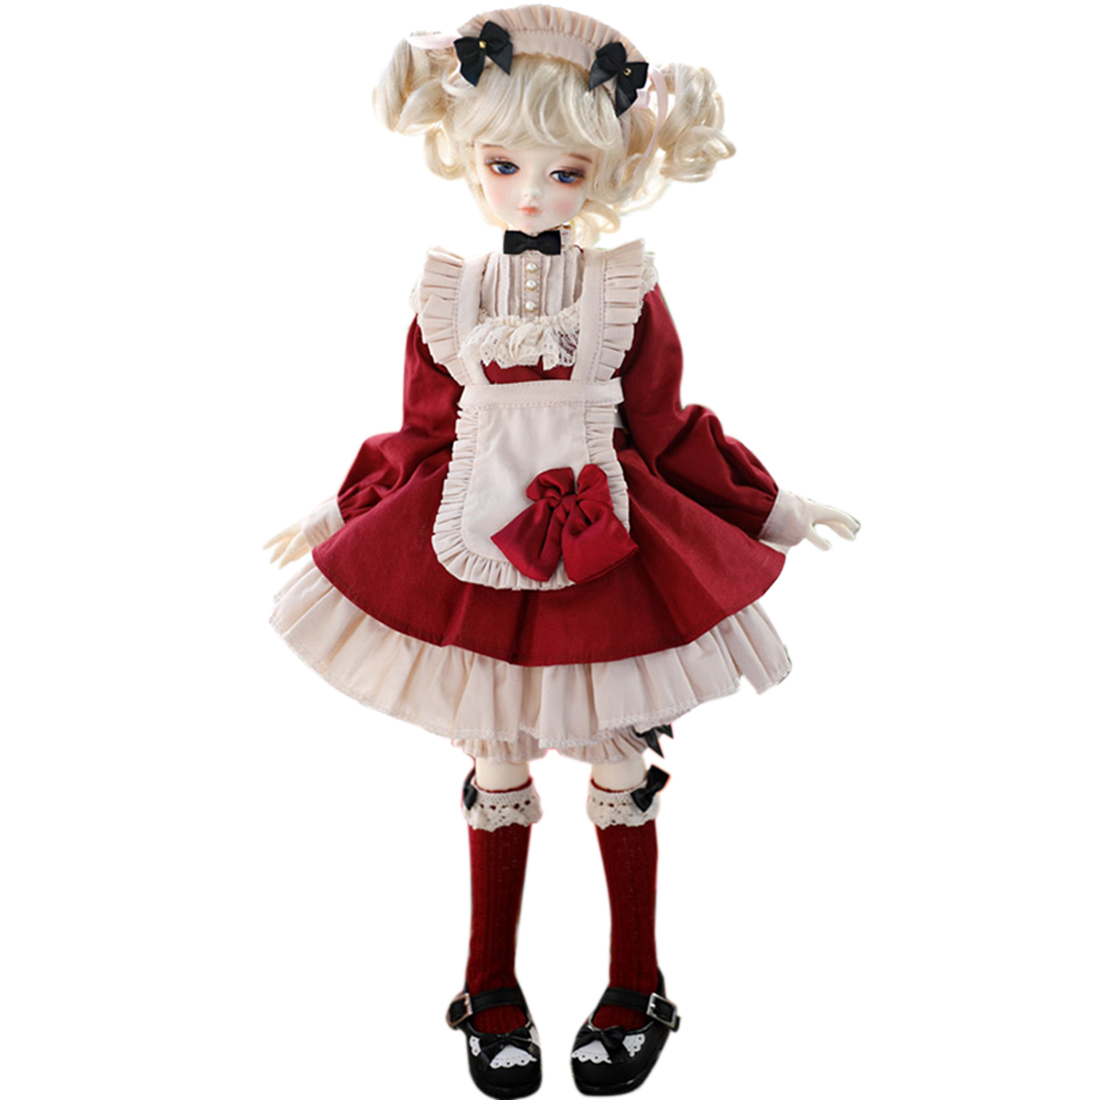 5Pcs/Lot Maid Apron Dress Outfit Set For 1:3/4/6 BJD Doll (No Doll)